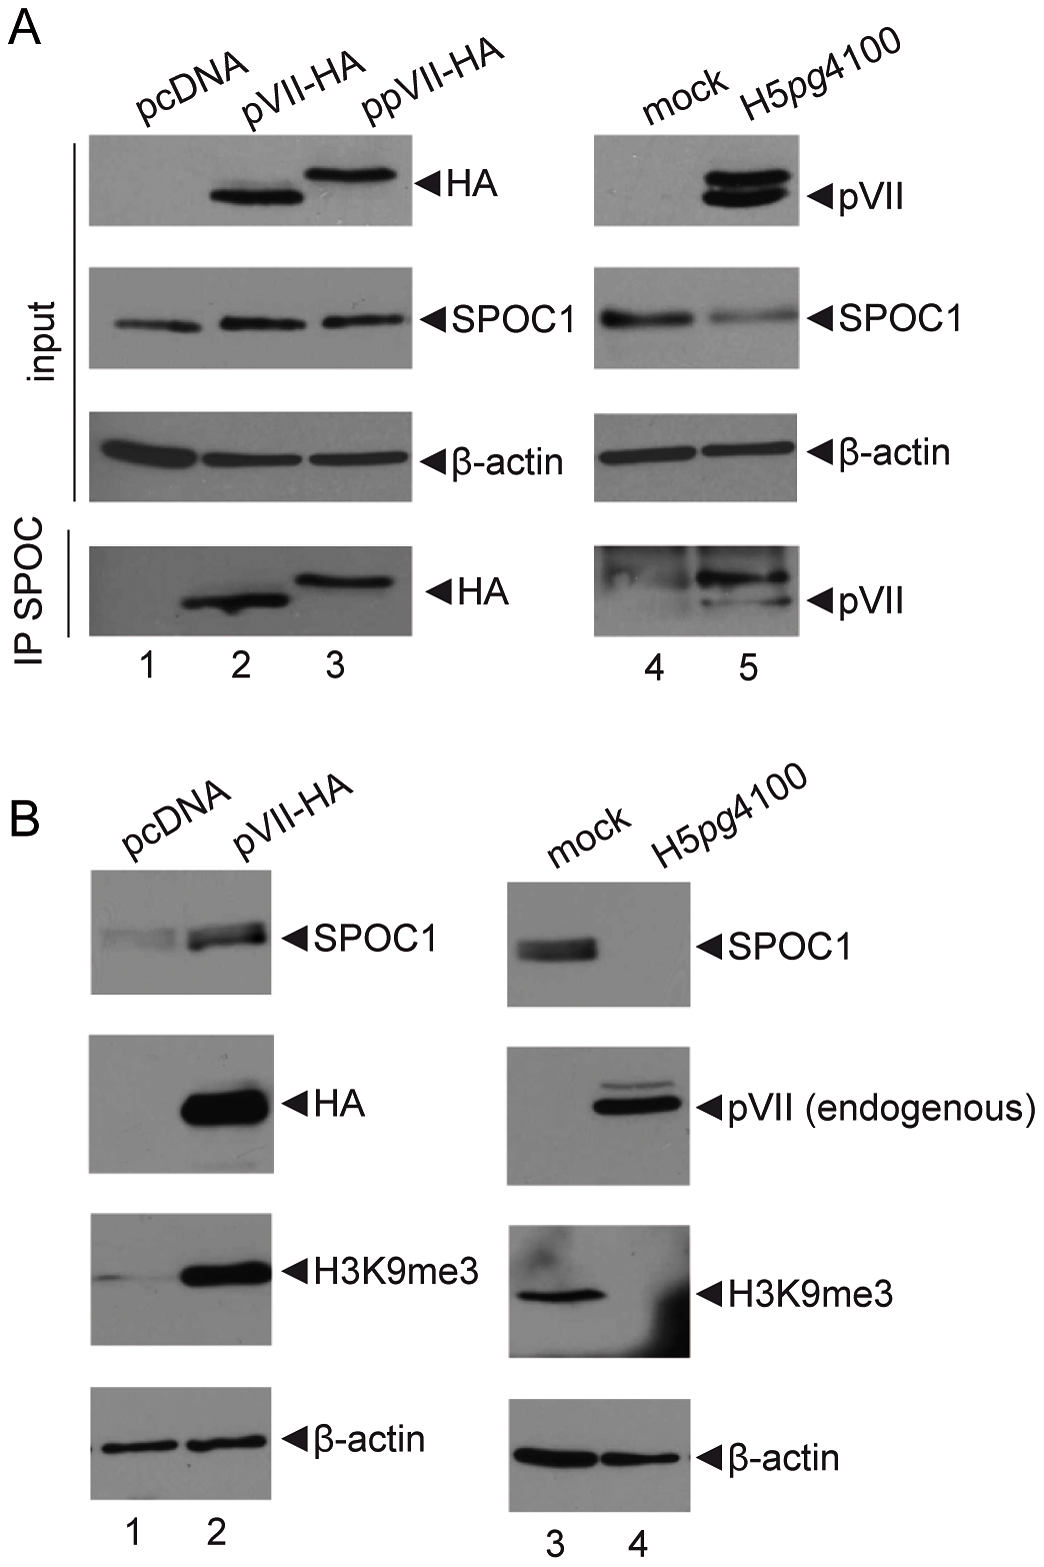 SPOC1 functionally cooperates with Ad core protein pVII.